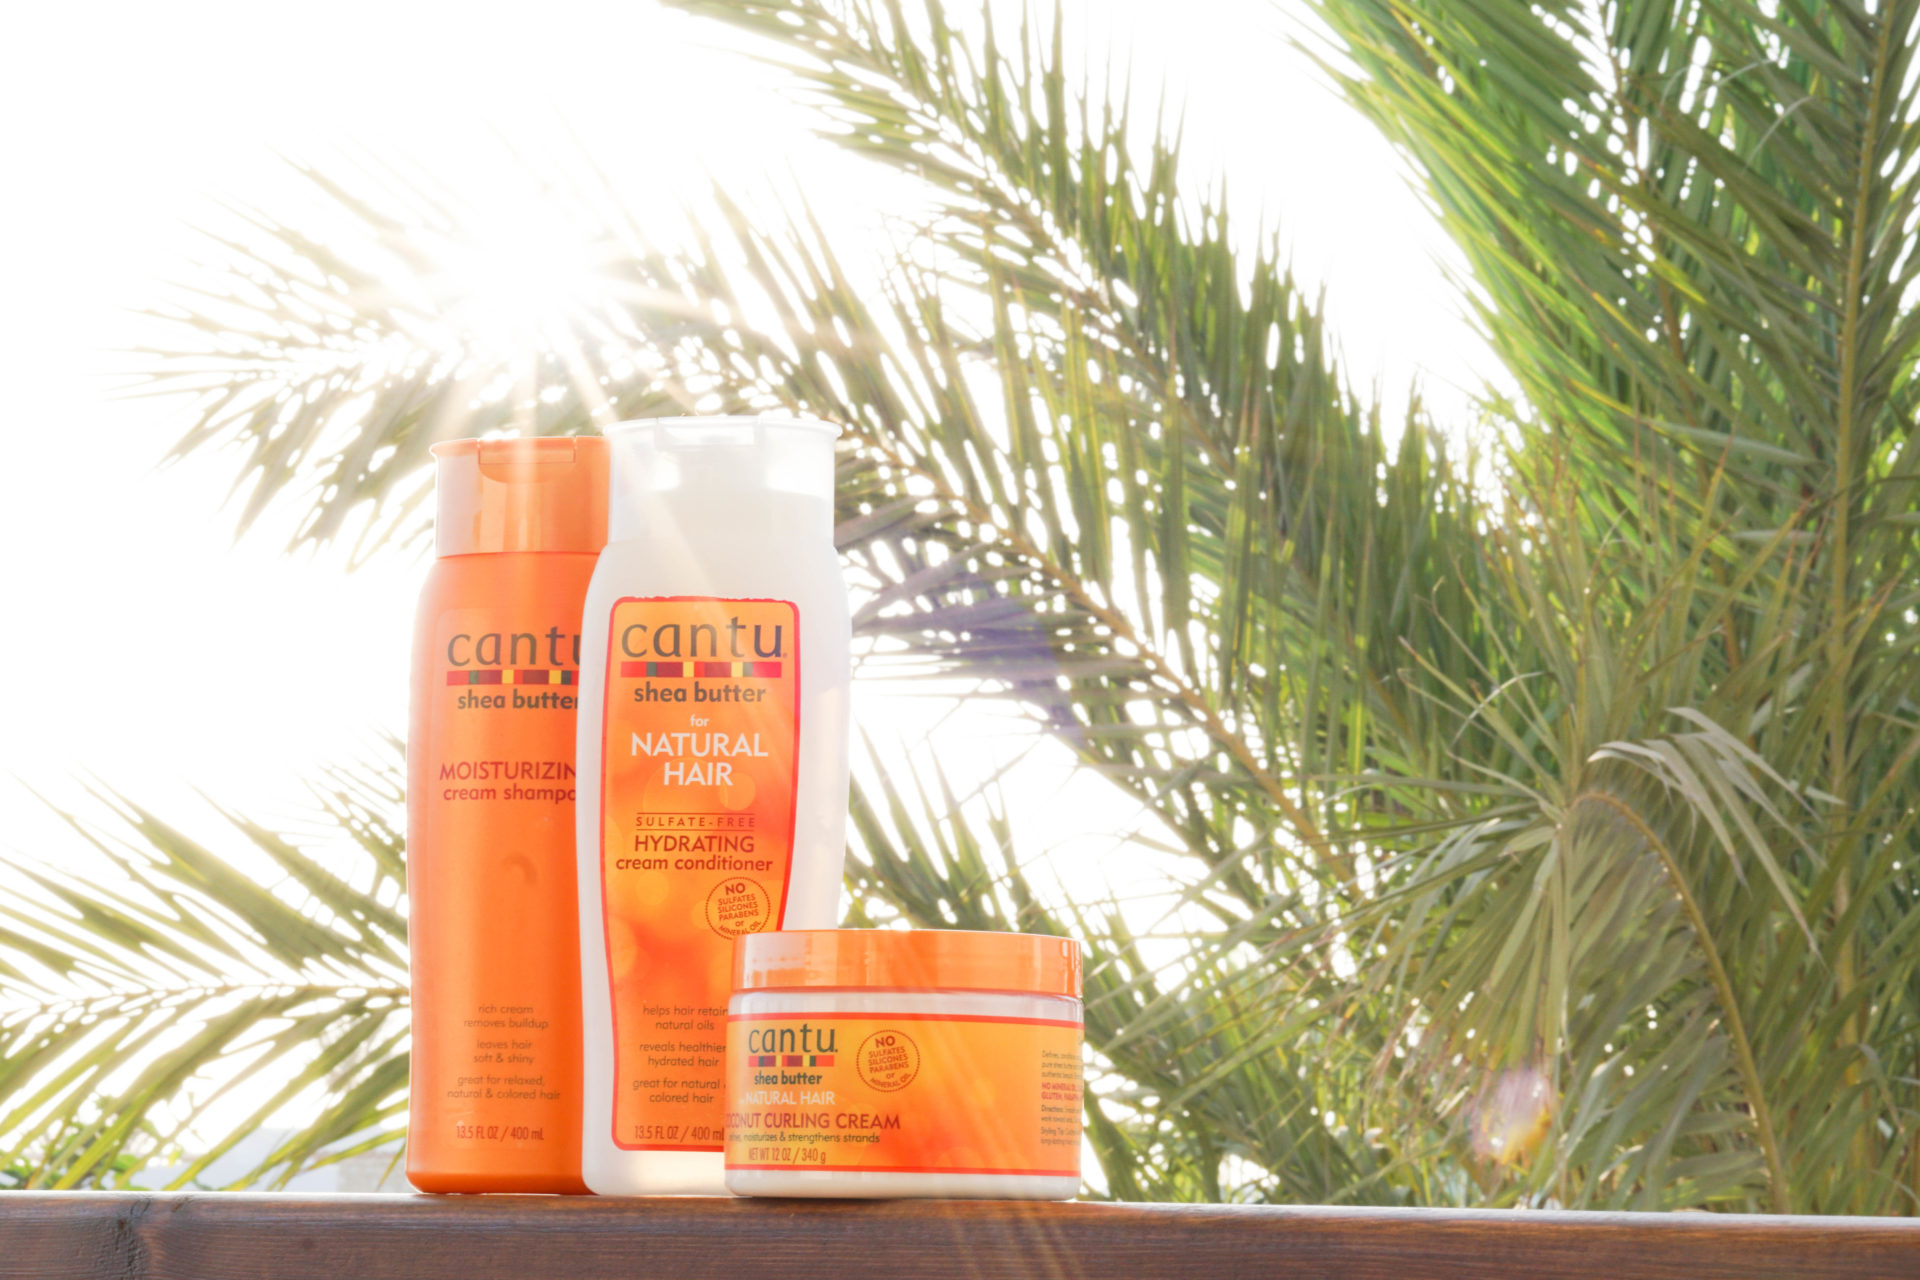 Cantu products curly hair care routine